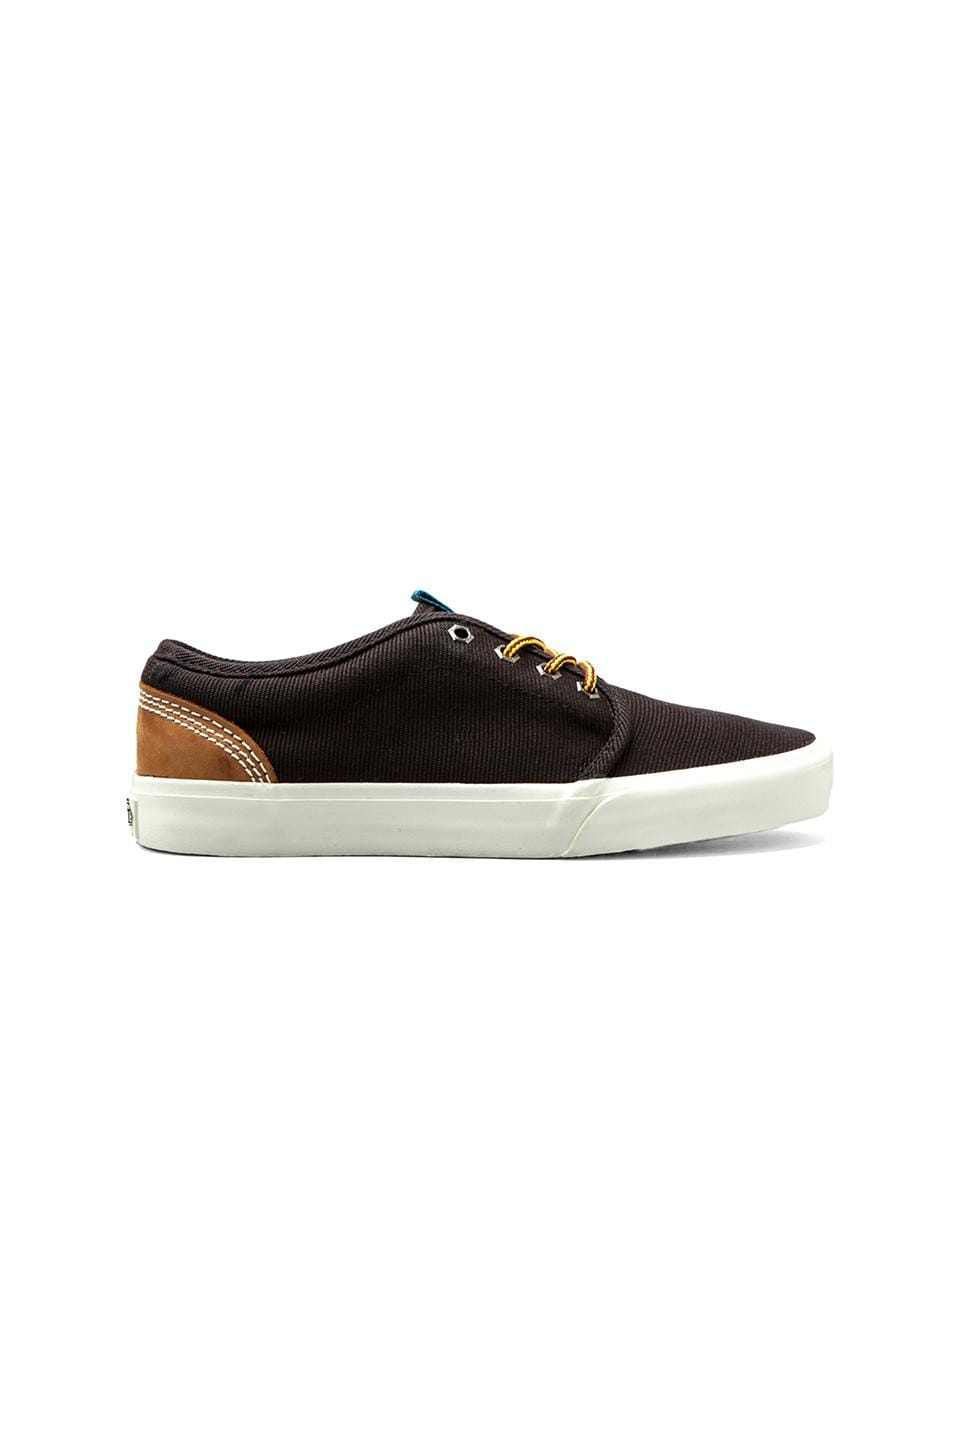 Vans California 106 Vulcanized in Black